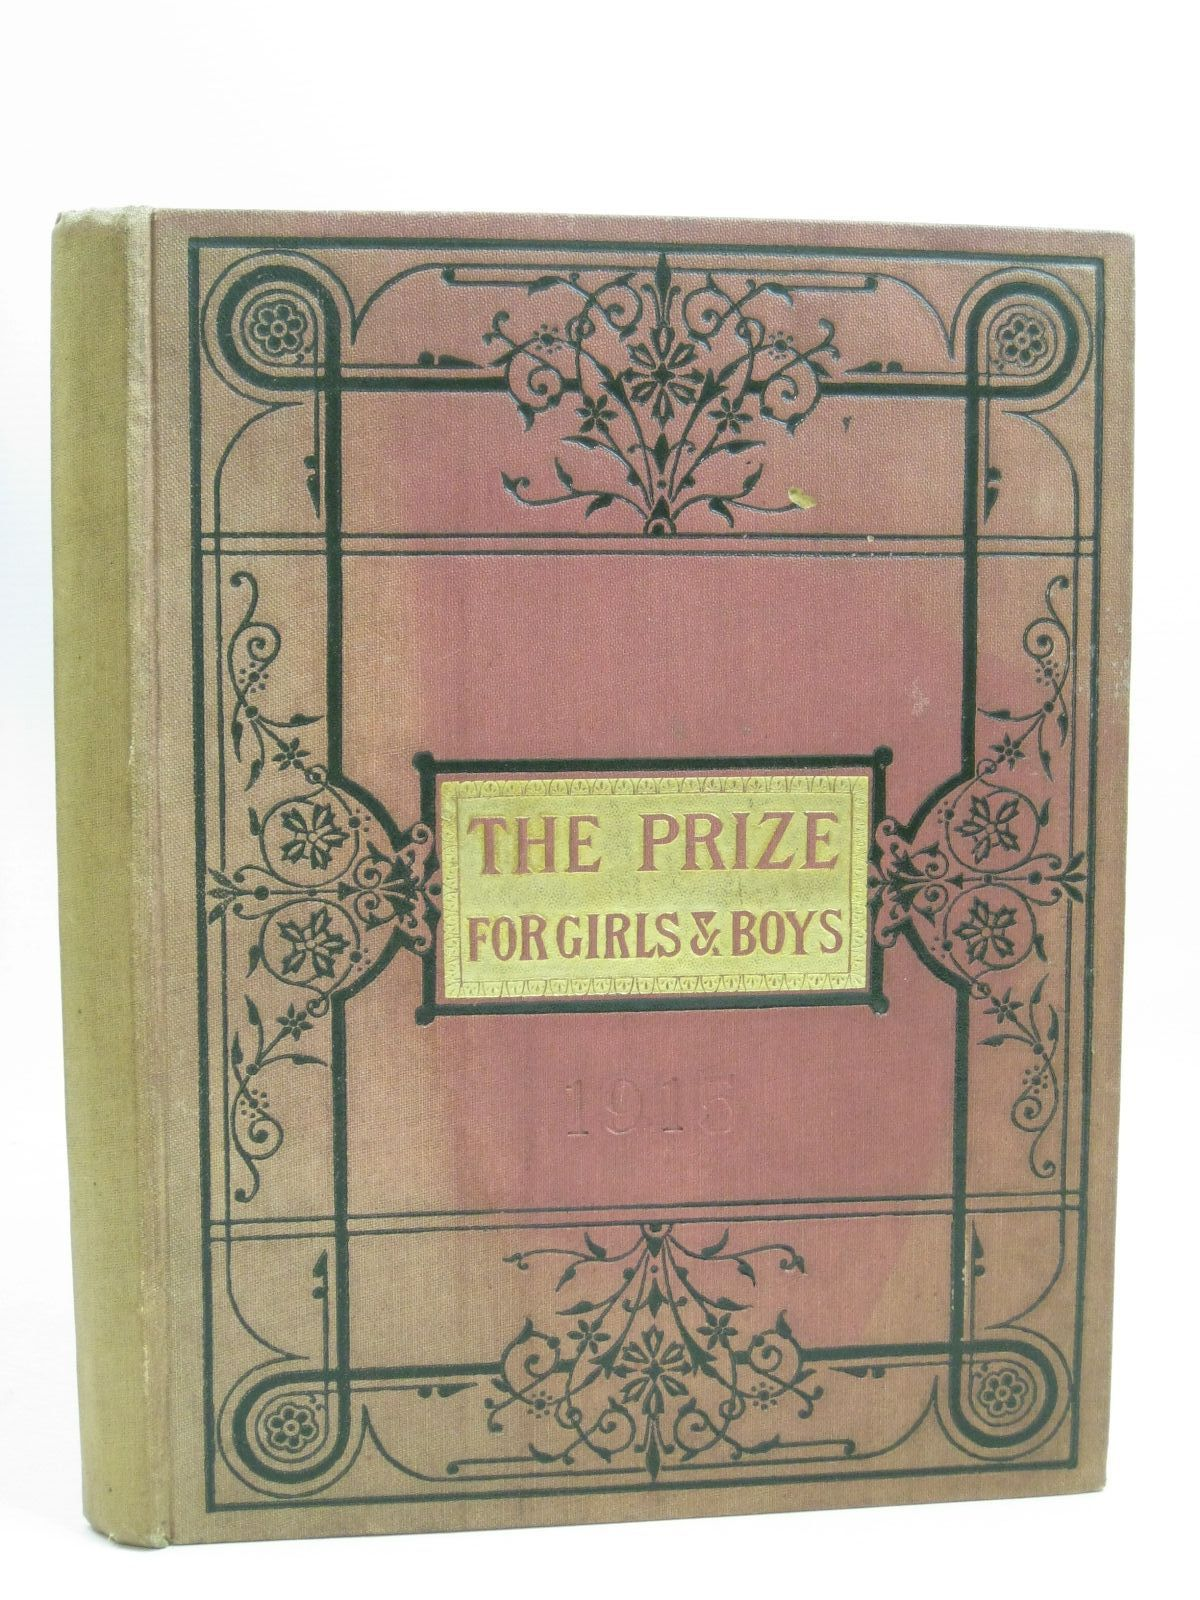 Photo of THE PRIZE FOR GIRLS AND BOYS 1915 published by Wells Gardner, Darton & Co. Ltd. (STOCK CODE: 1506238)  for sale by Stella & Rose's Books